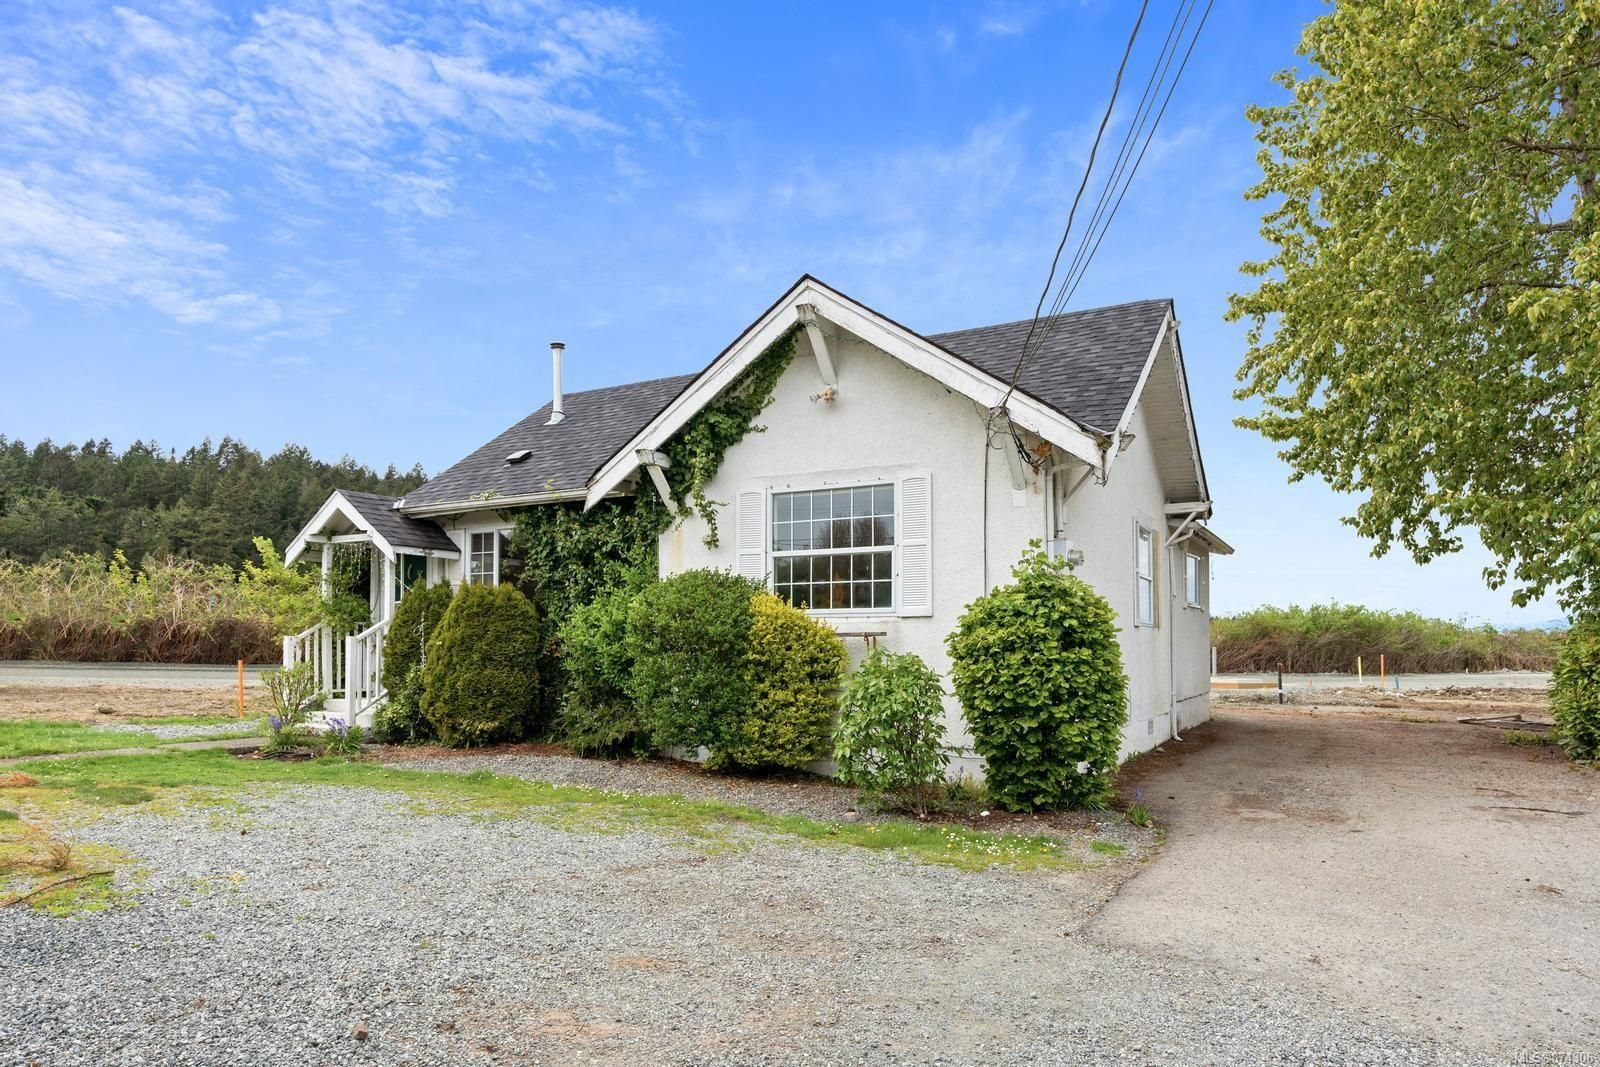 Main Photo: 9338 East Saanich Rd in : NS Airport House for sale (North Saanich)  : MLS®# 874306